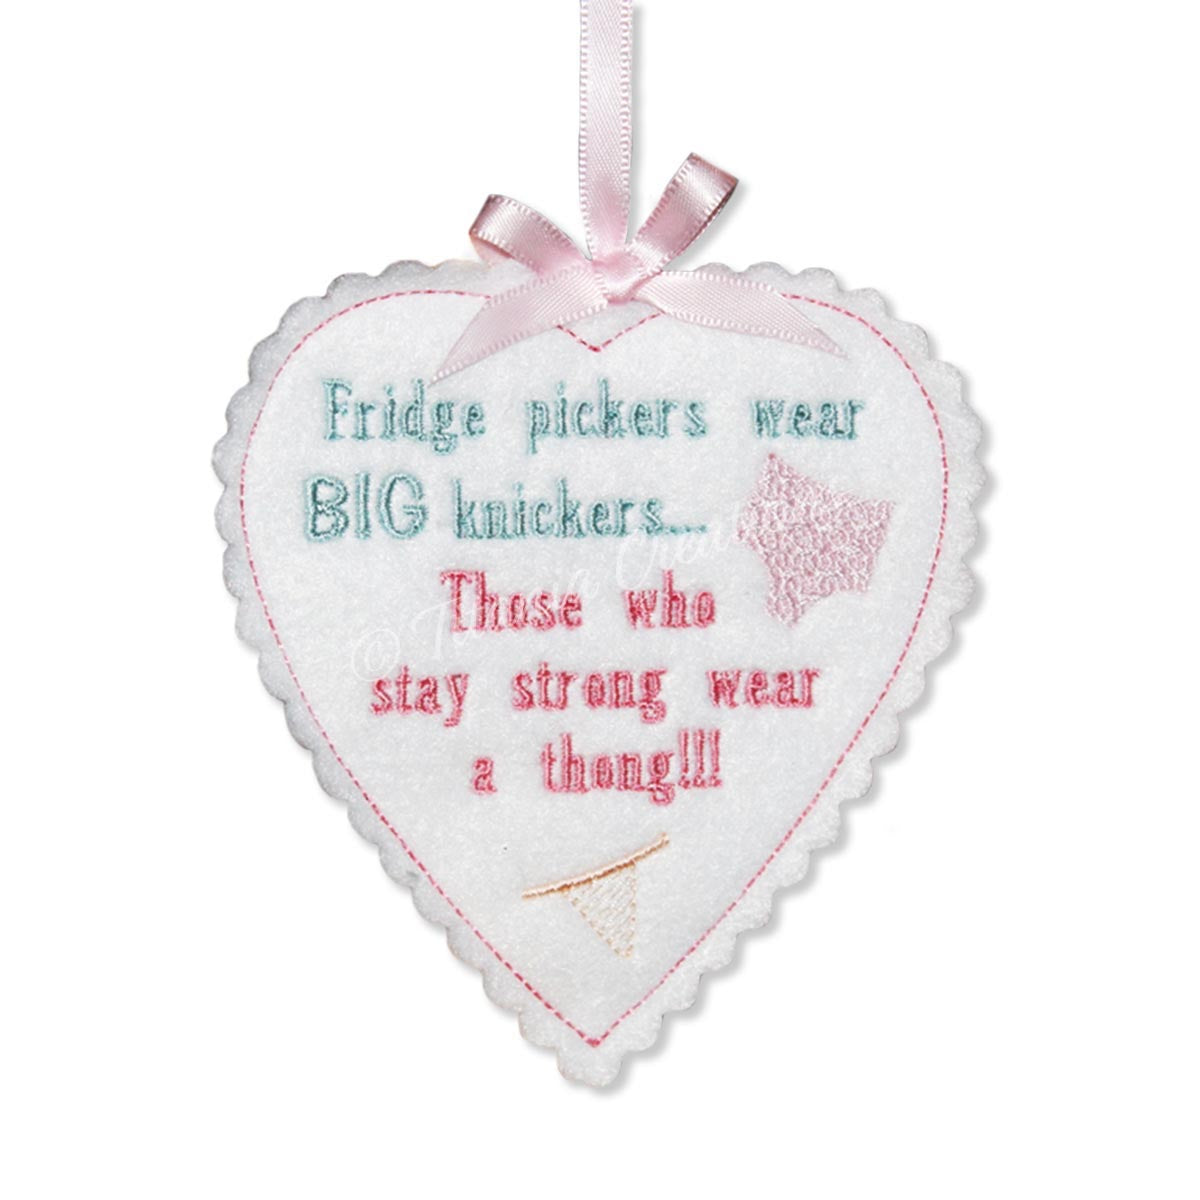 ITH Fridge Picker Heart 4x4